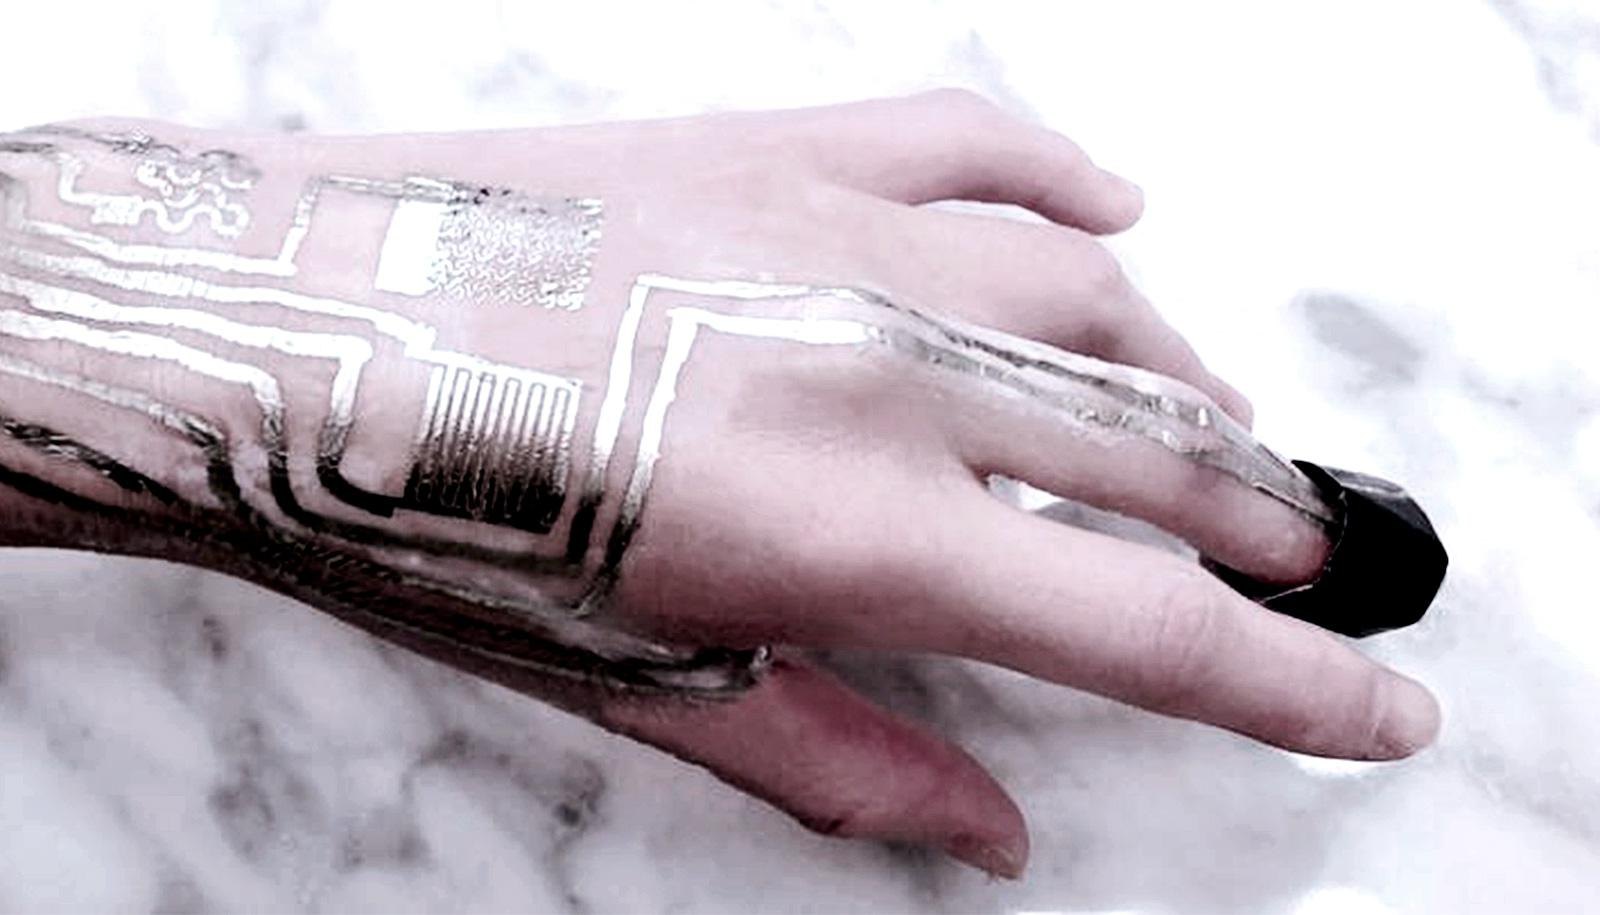 A hand has silver-looking electronics printed on it